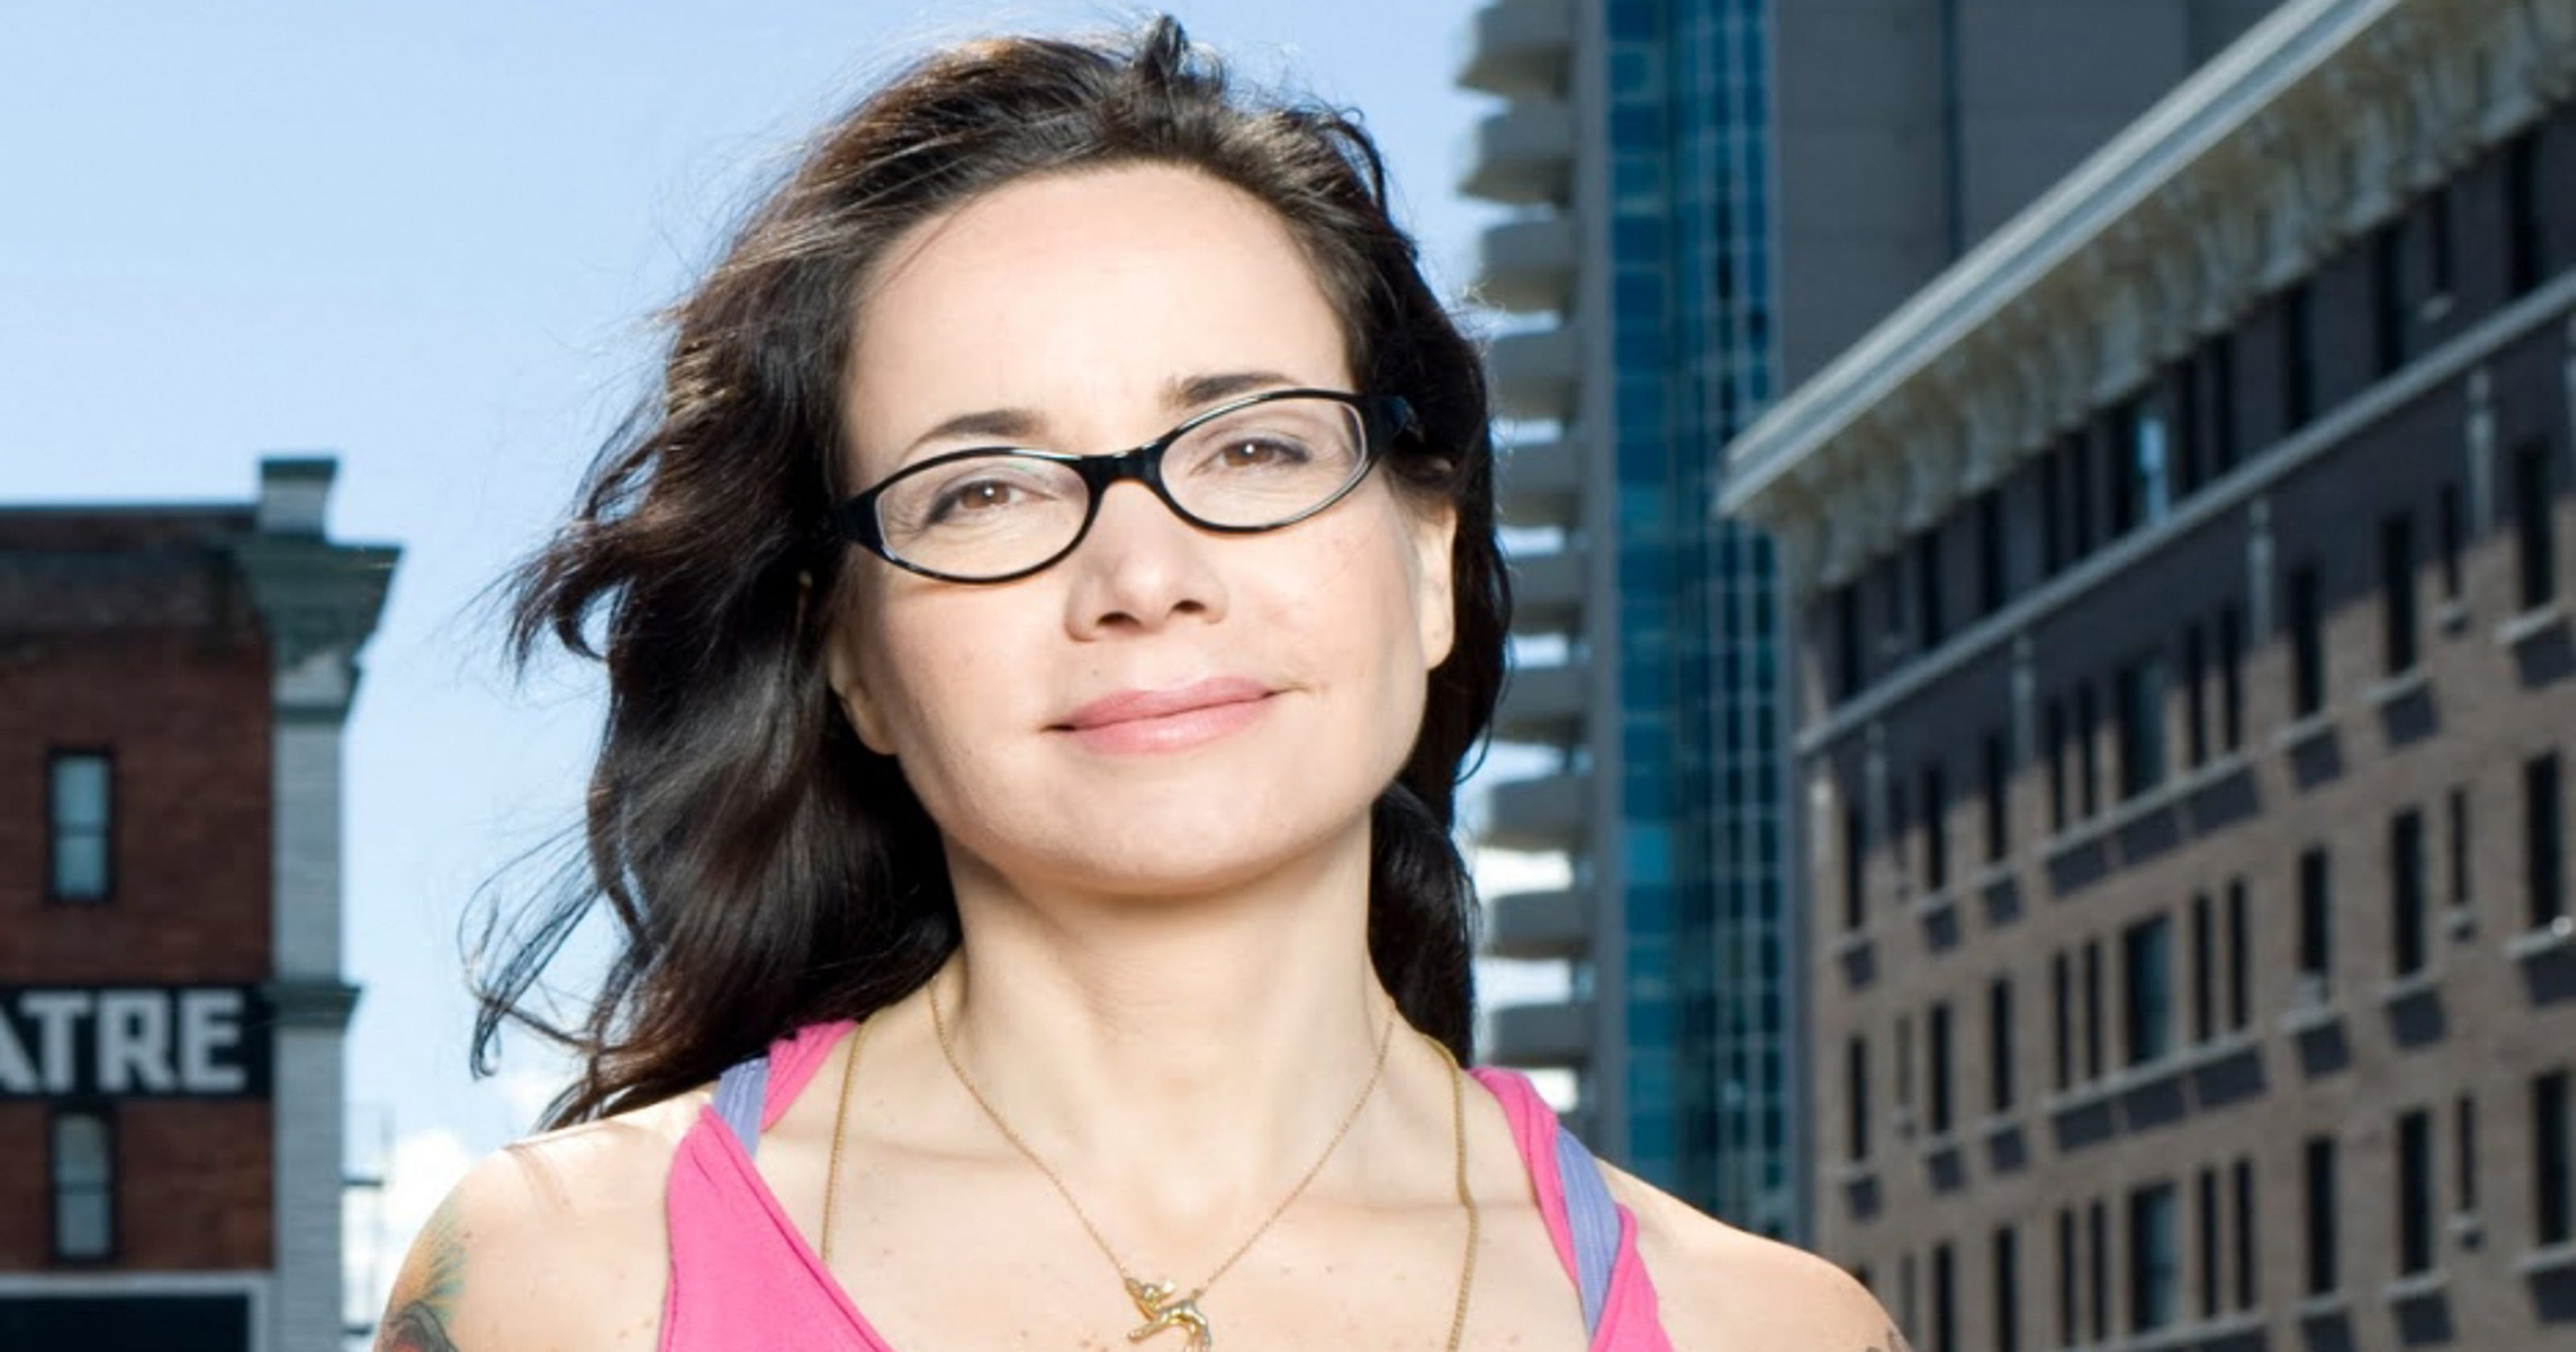 7 things you didn't know about Janeane Garofalo